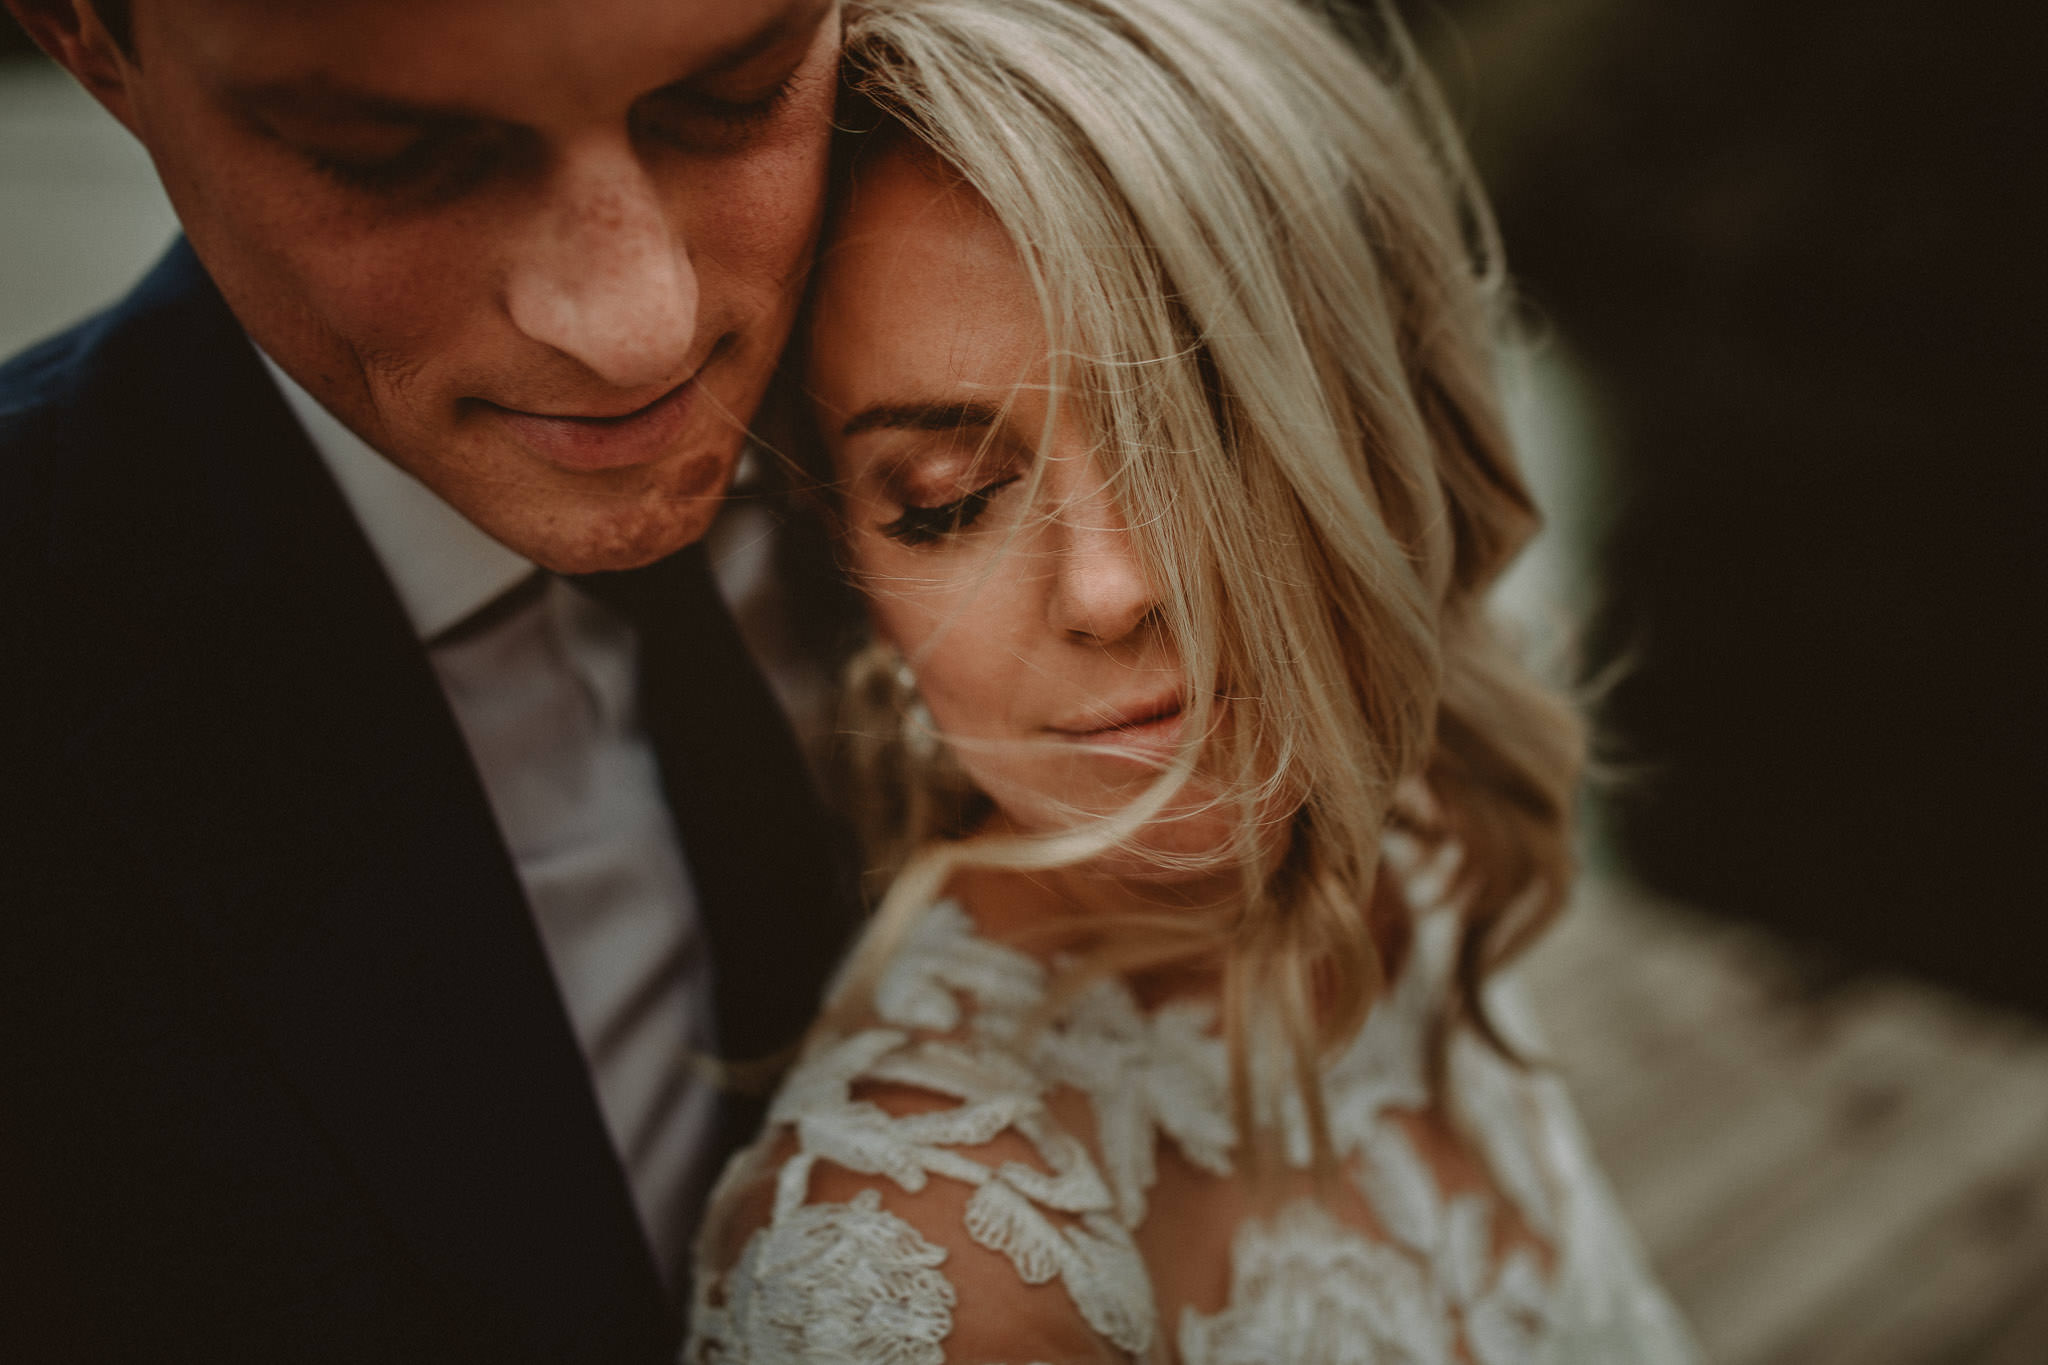 Best wedding photographer in Vancouver